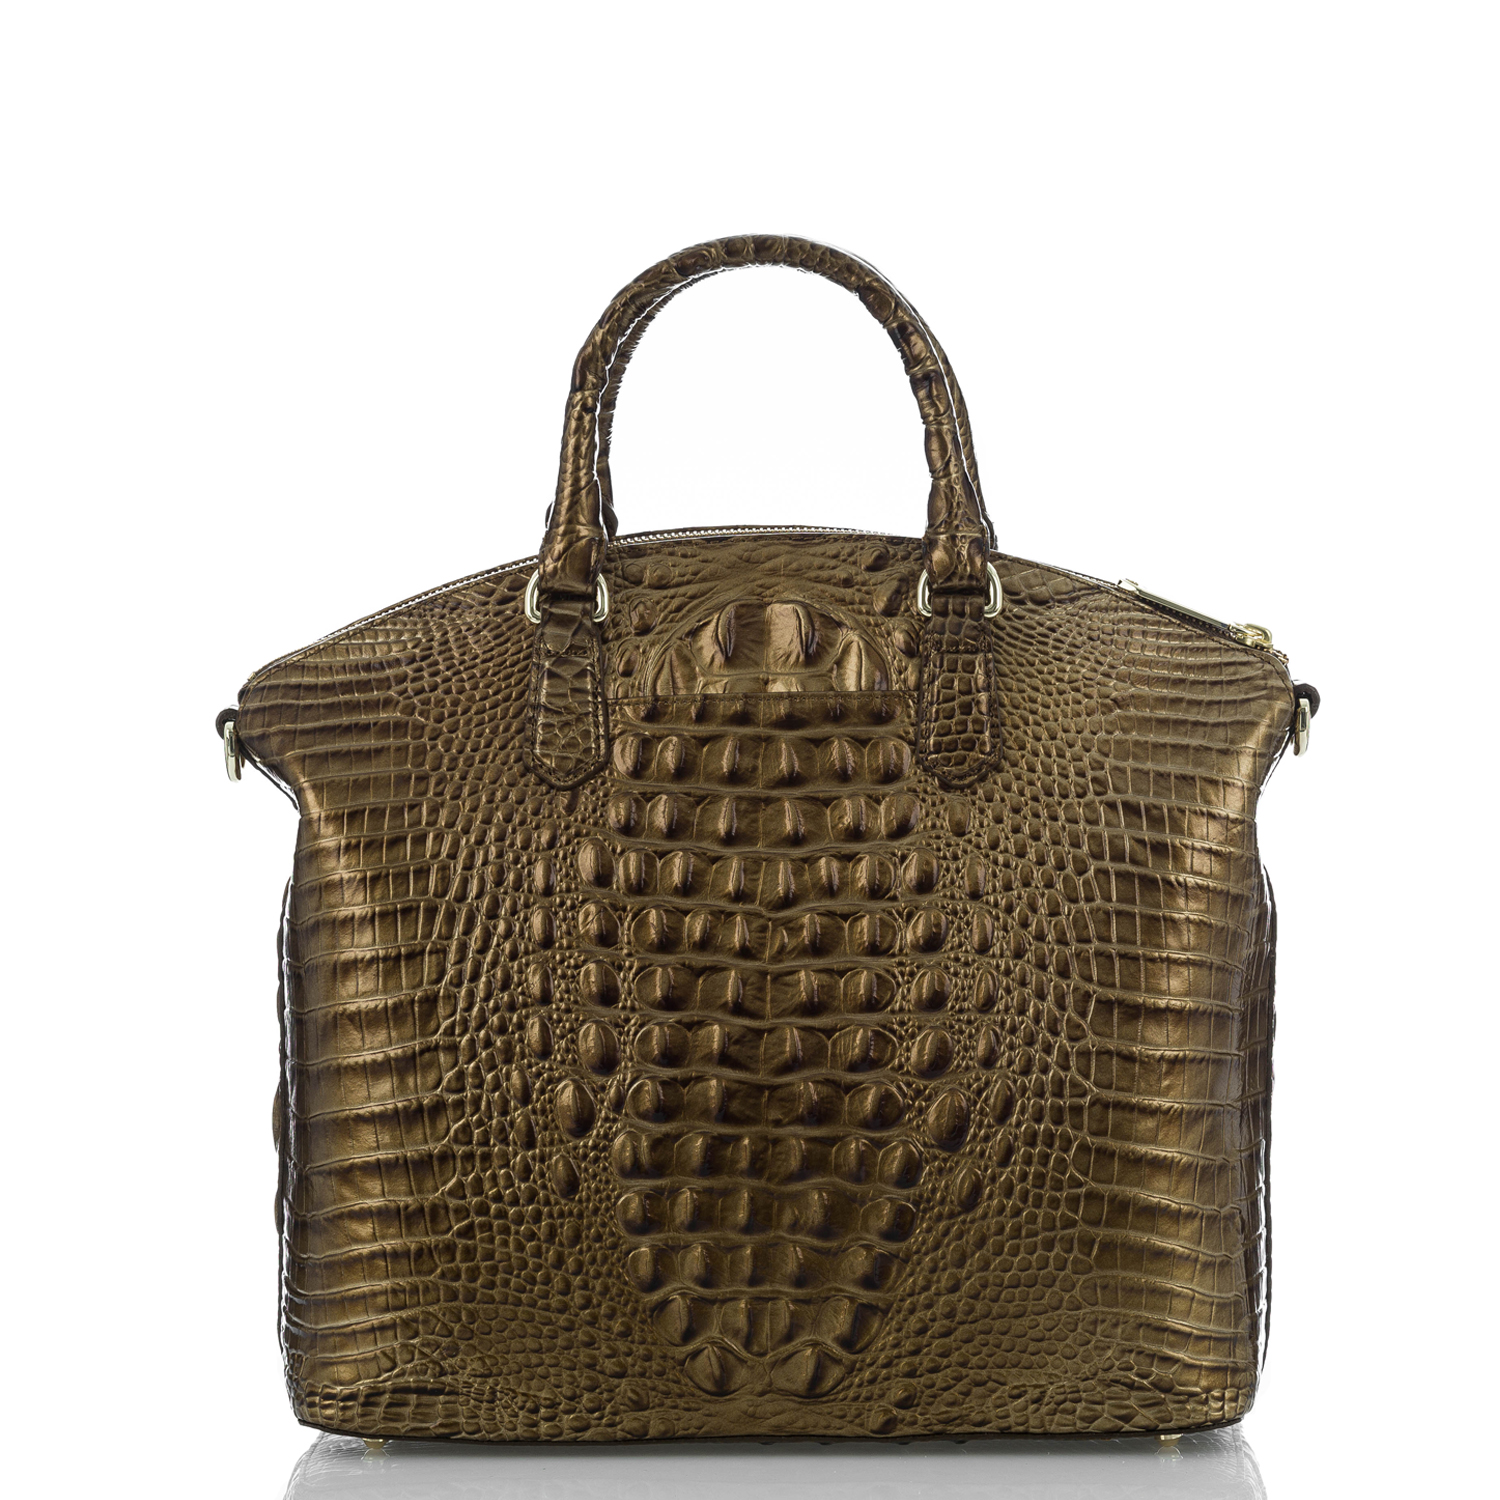 Buy Brahmin Gabriella Satchel and other Top-Handle Bags at sanjeeviarts.ml Our wide selection is eligible for free shipping and free returns.